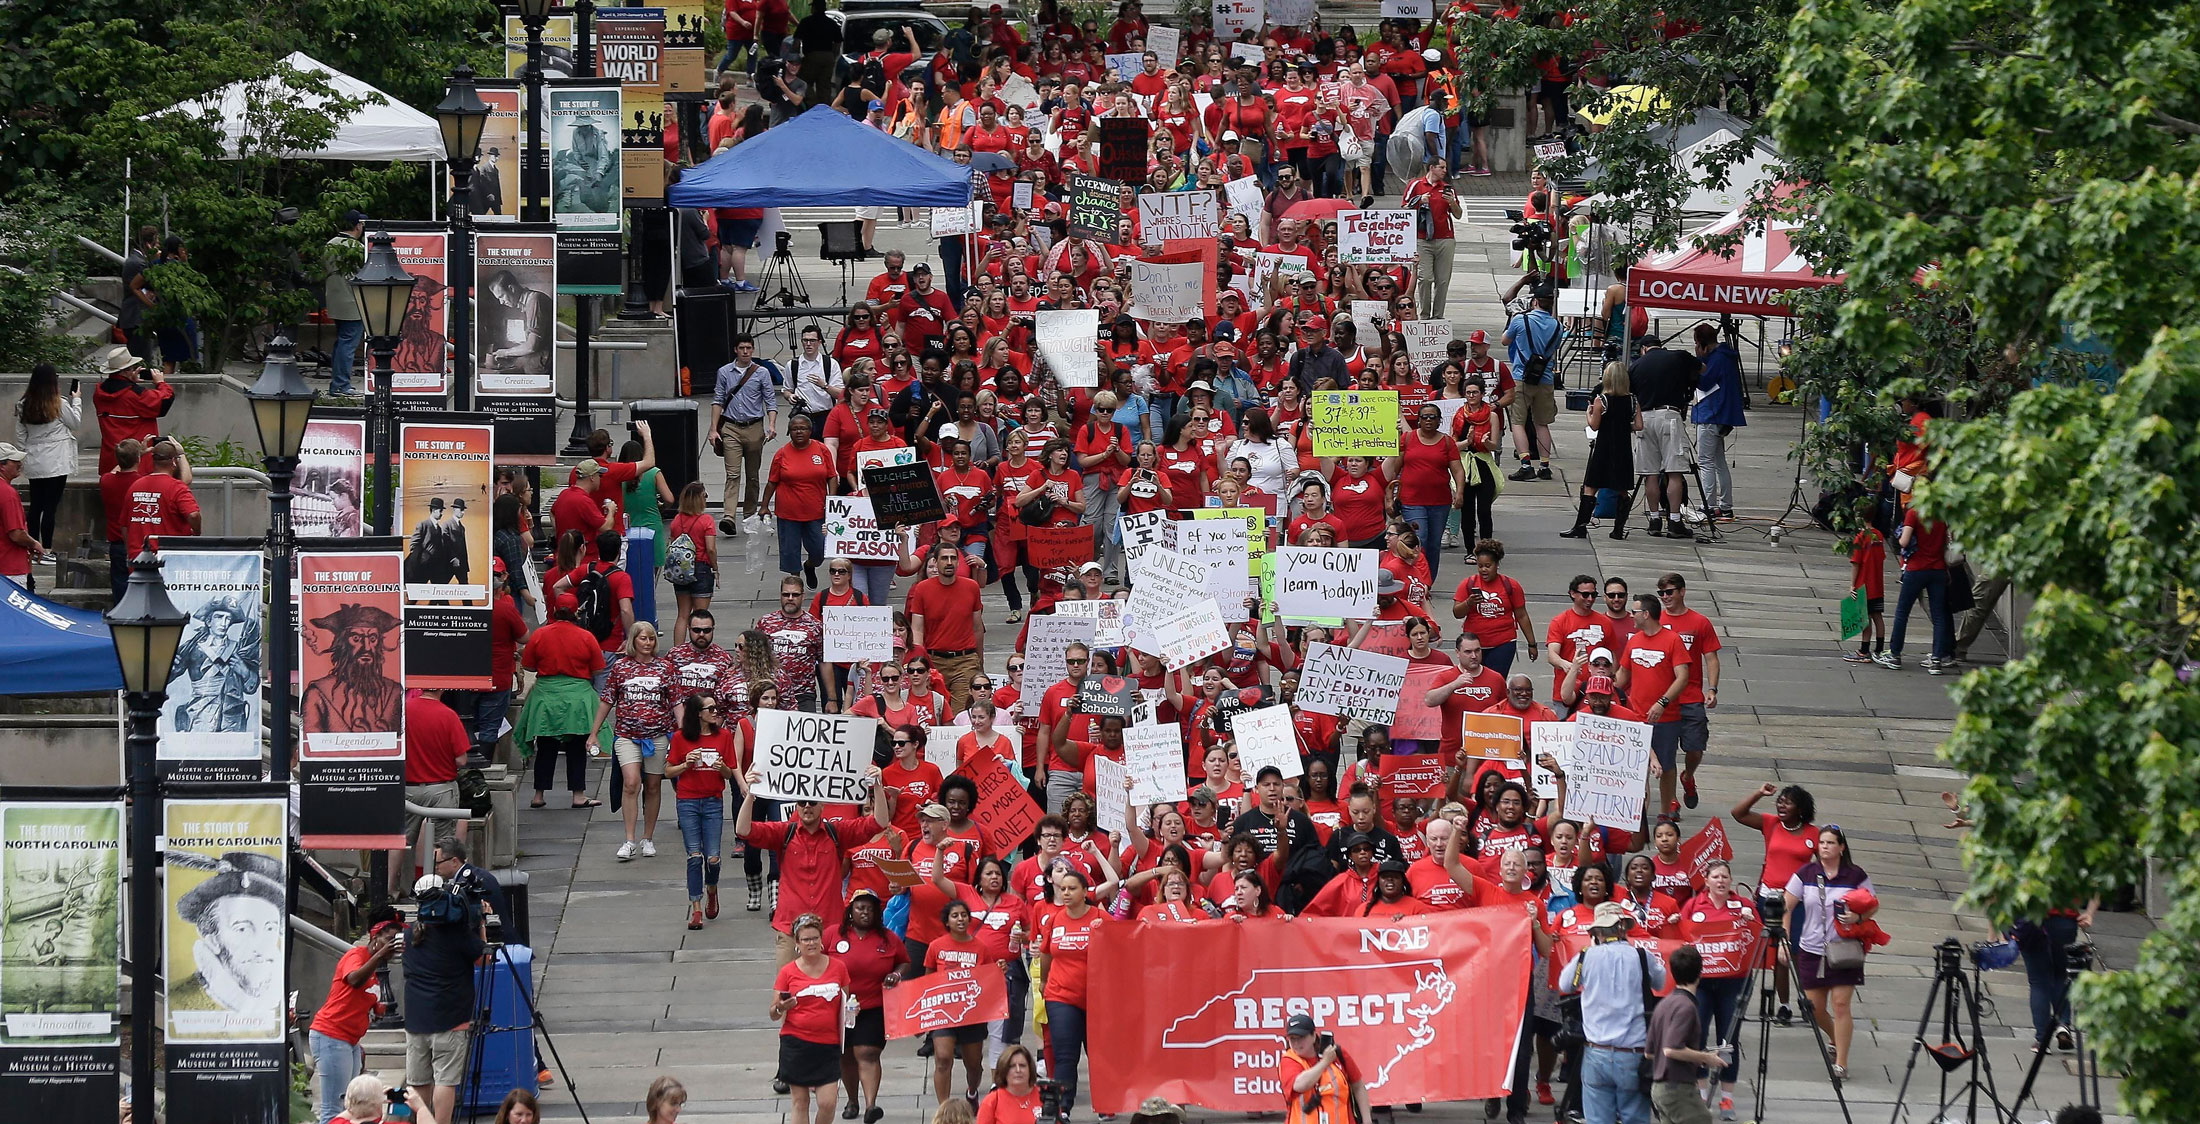 Teachers March in North Carolina: What to know, and why they're